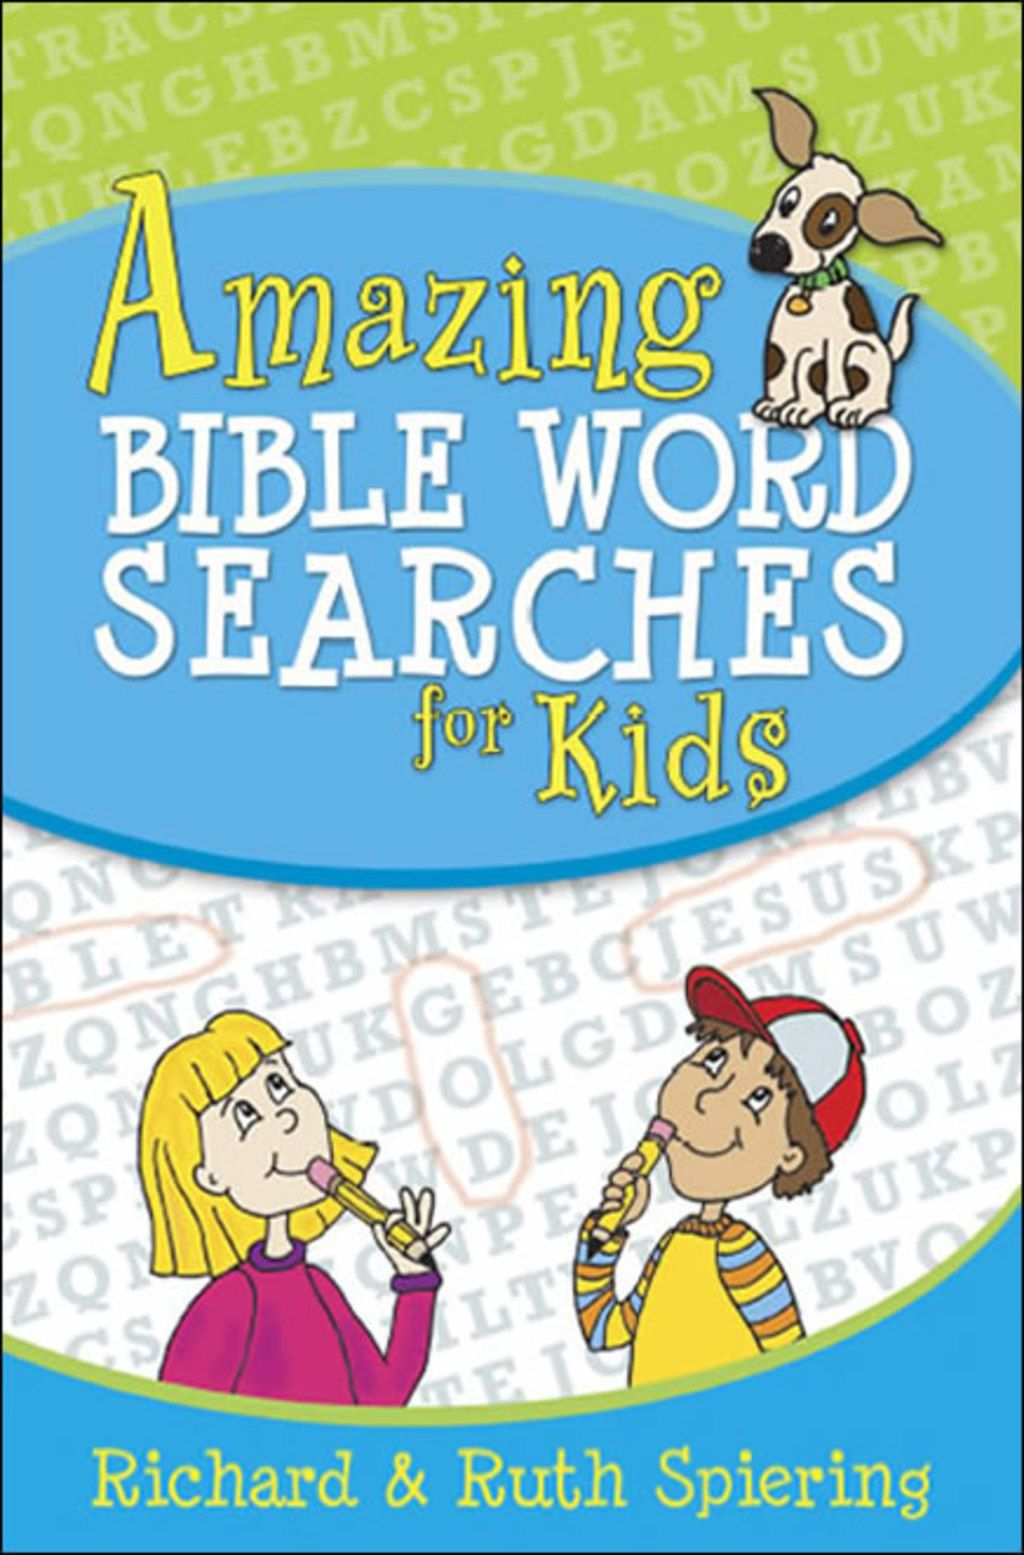 Amazing Bible Word Searches for Kids (eBook) Bible for